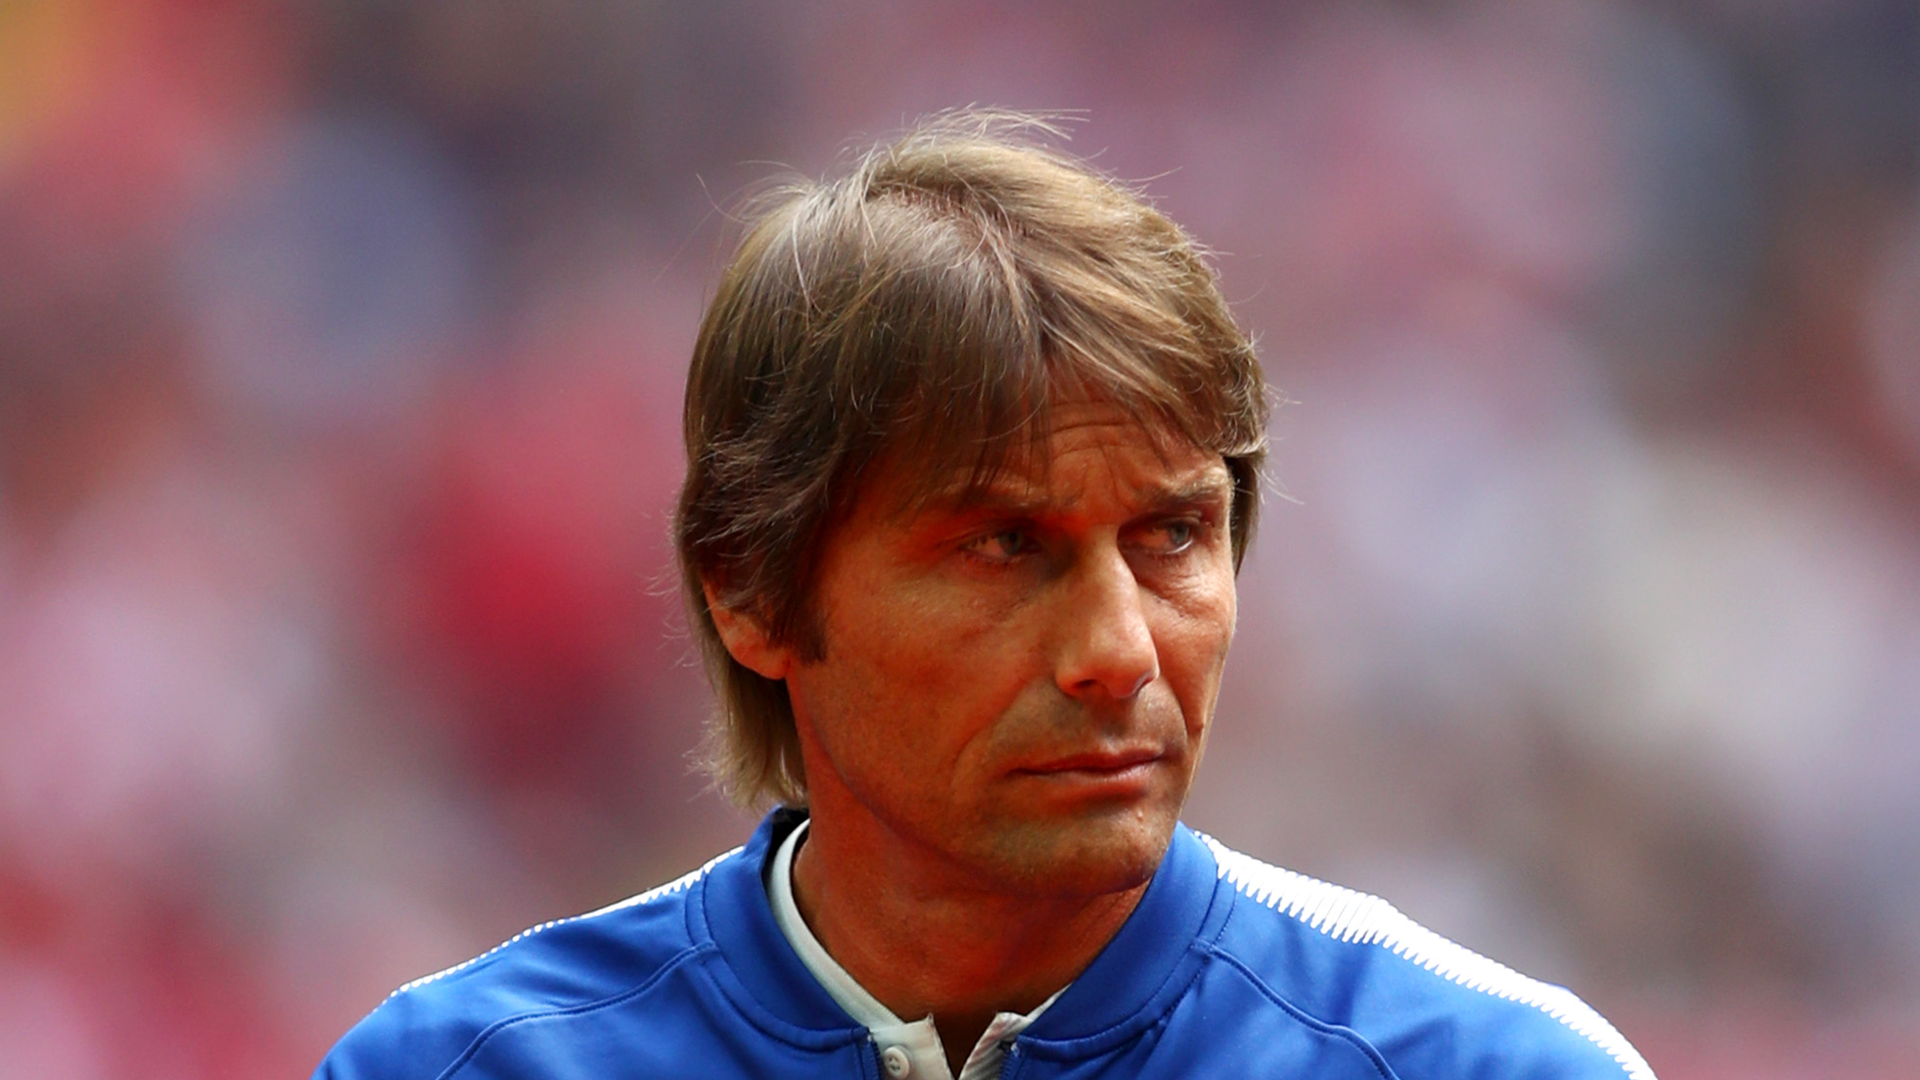 Chelsea are doing their best to sign more players — Antonio Conte